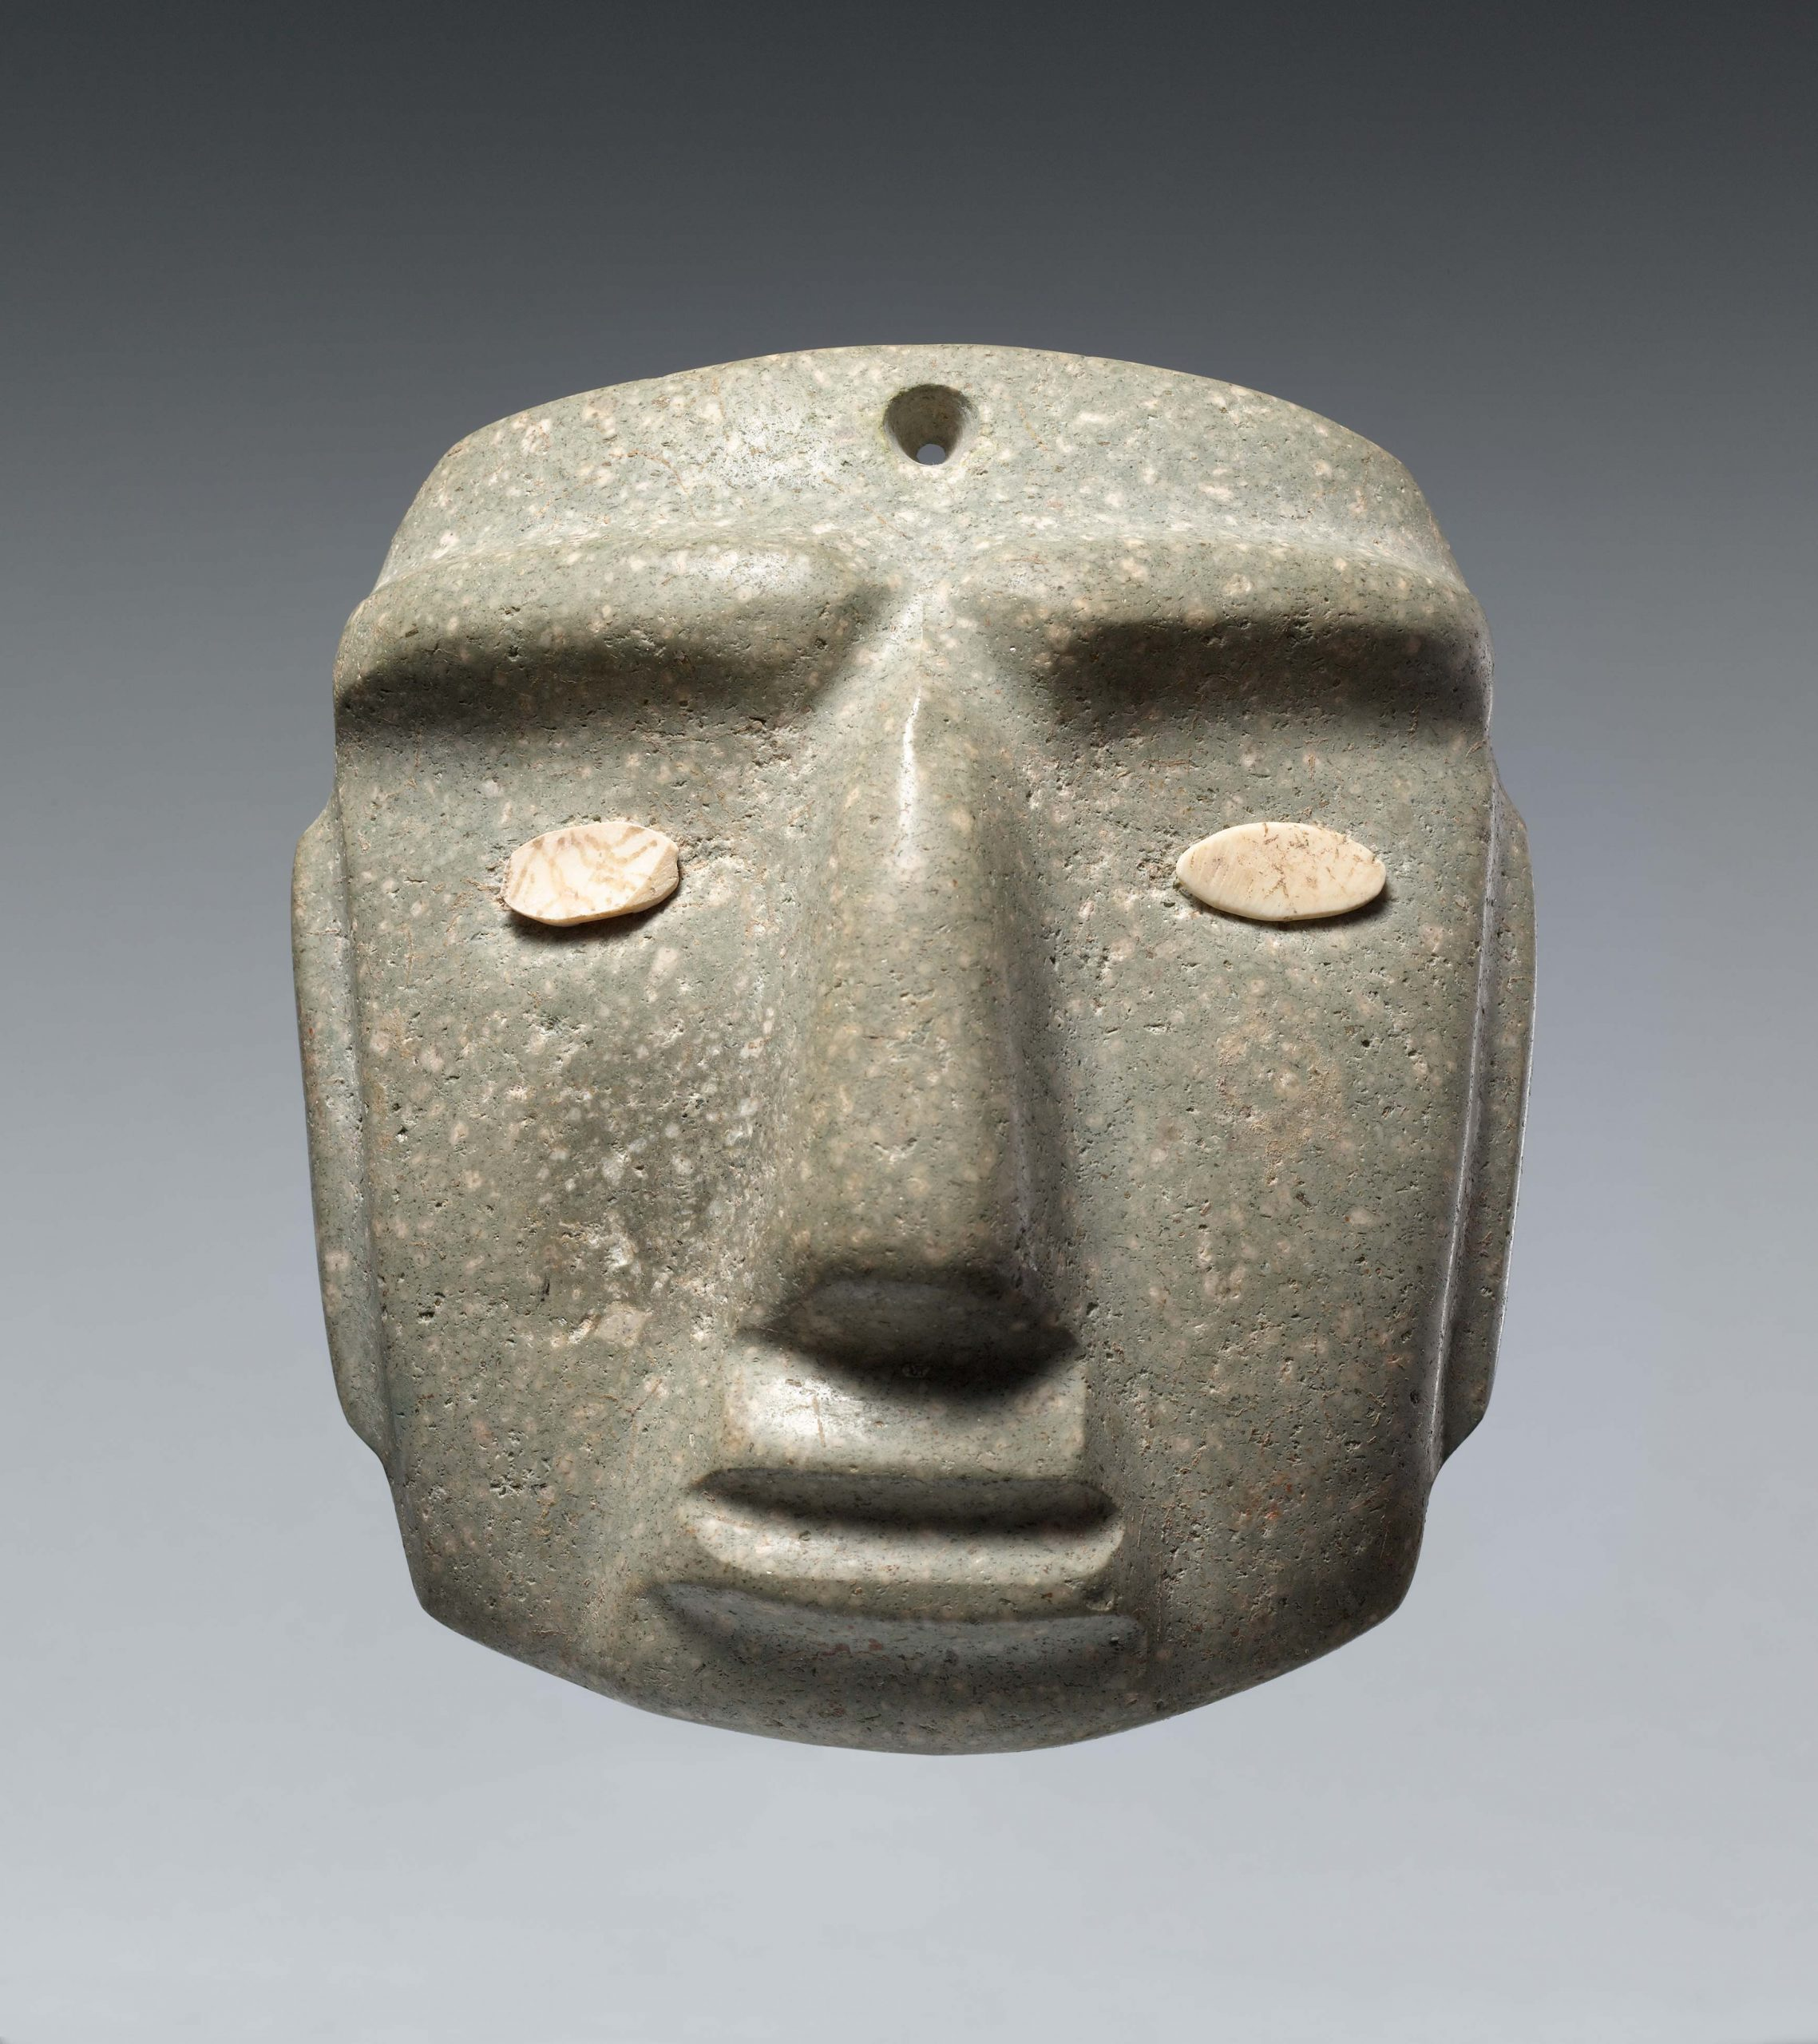 A stone mask with indented facial features and inlaid shell to represent the eyes.